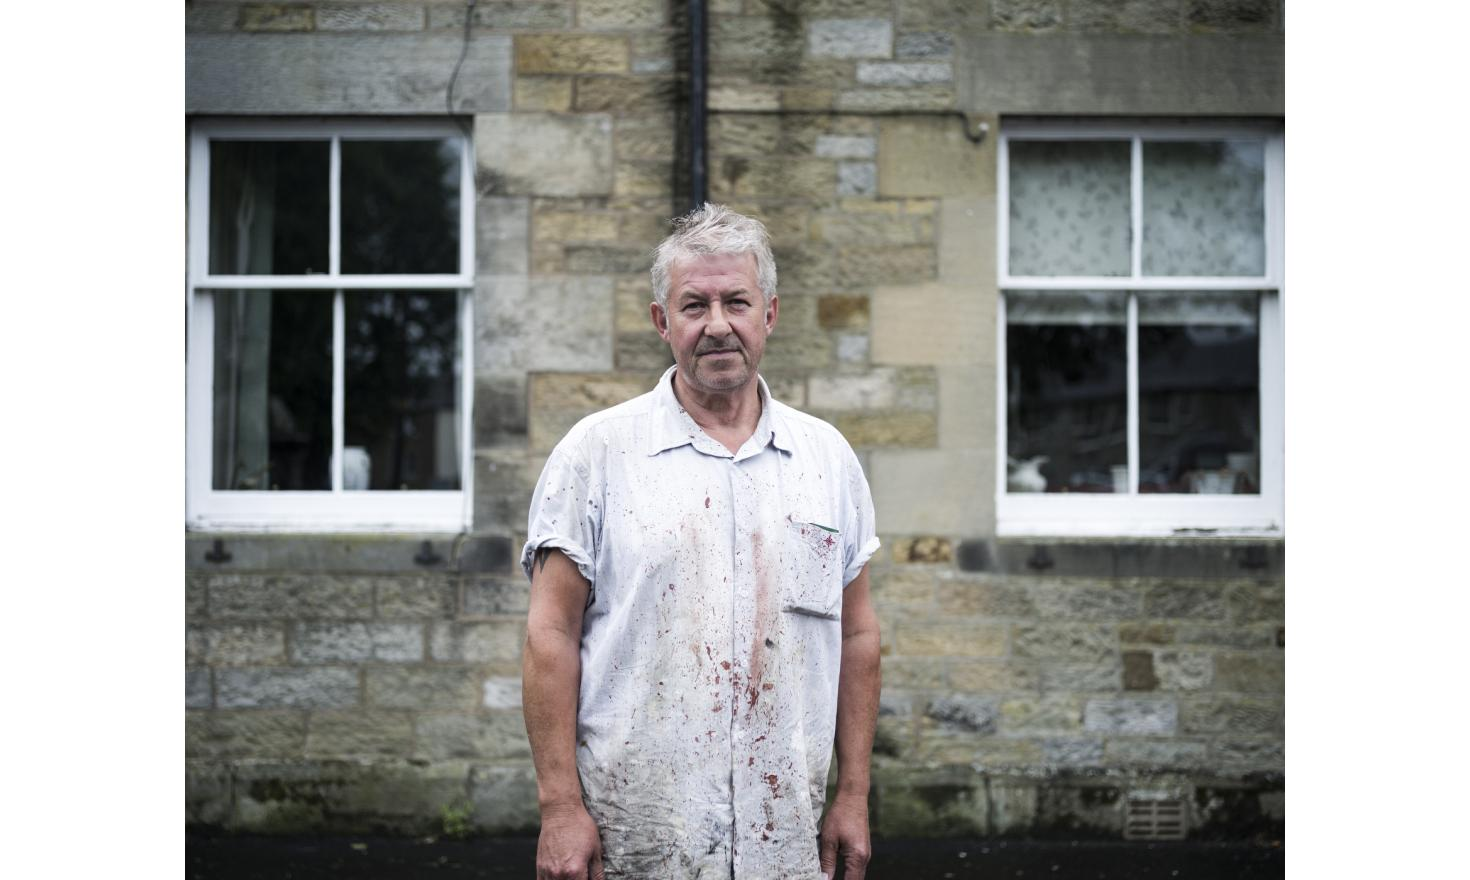 Jeff Balis (58) is a British resident of Newscastleton, Scotland. He didn't vote in the British referendum on EU membership. The Scottish Borders region voted 58,5% for remaining in the EU.